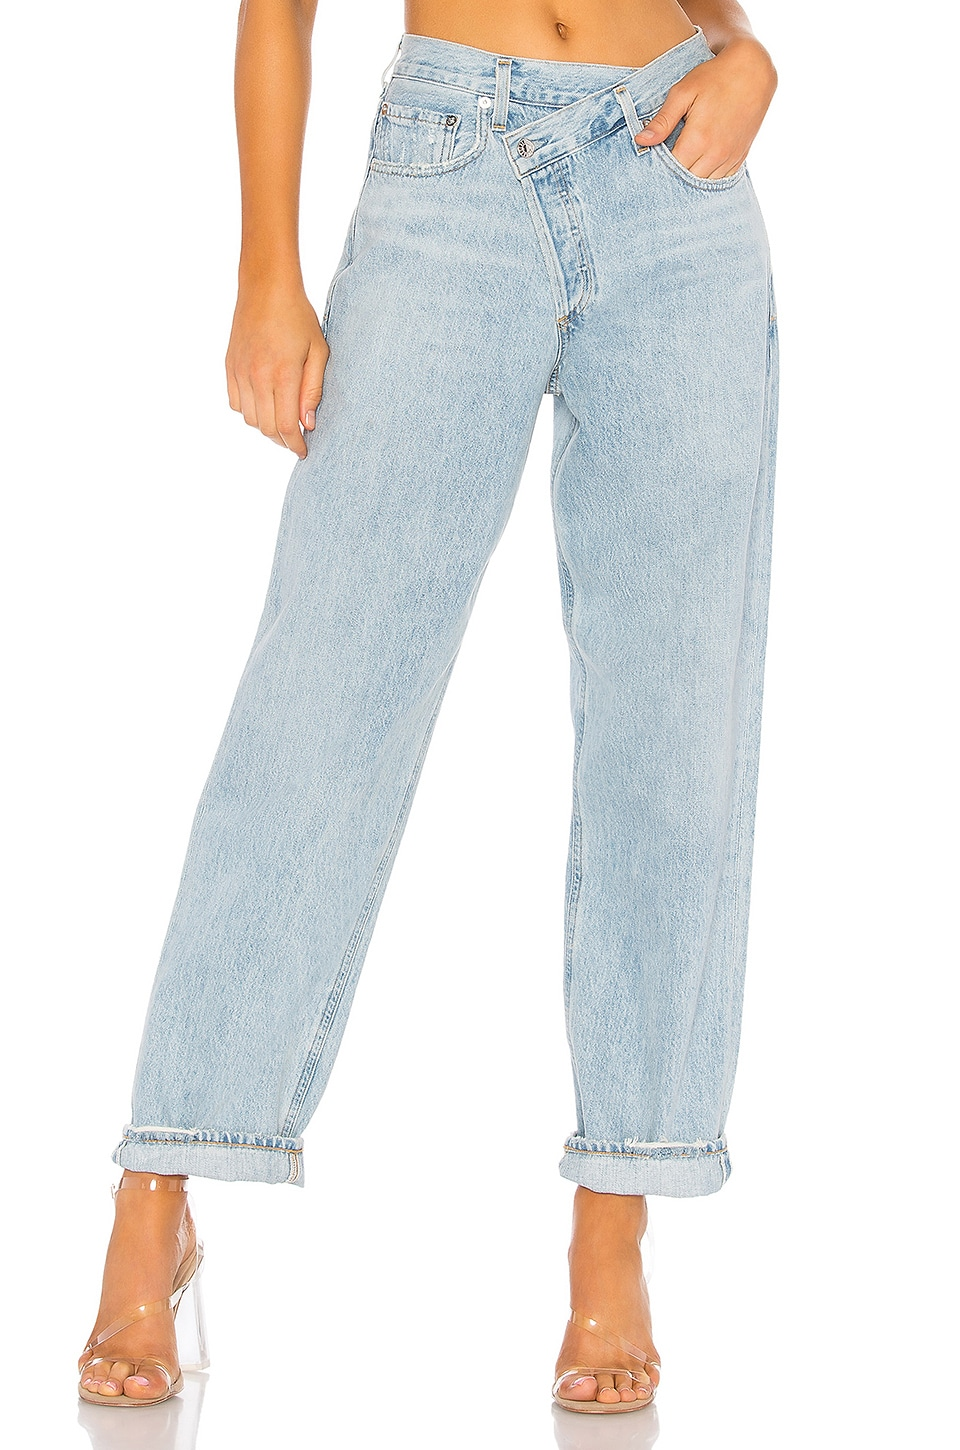 Criss Cross Upsized Jean                     AGOLDE 7